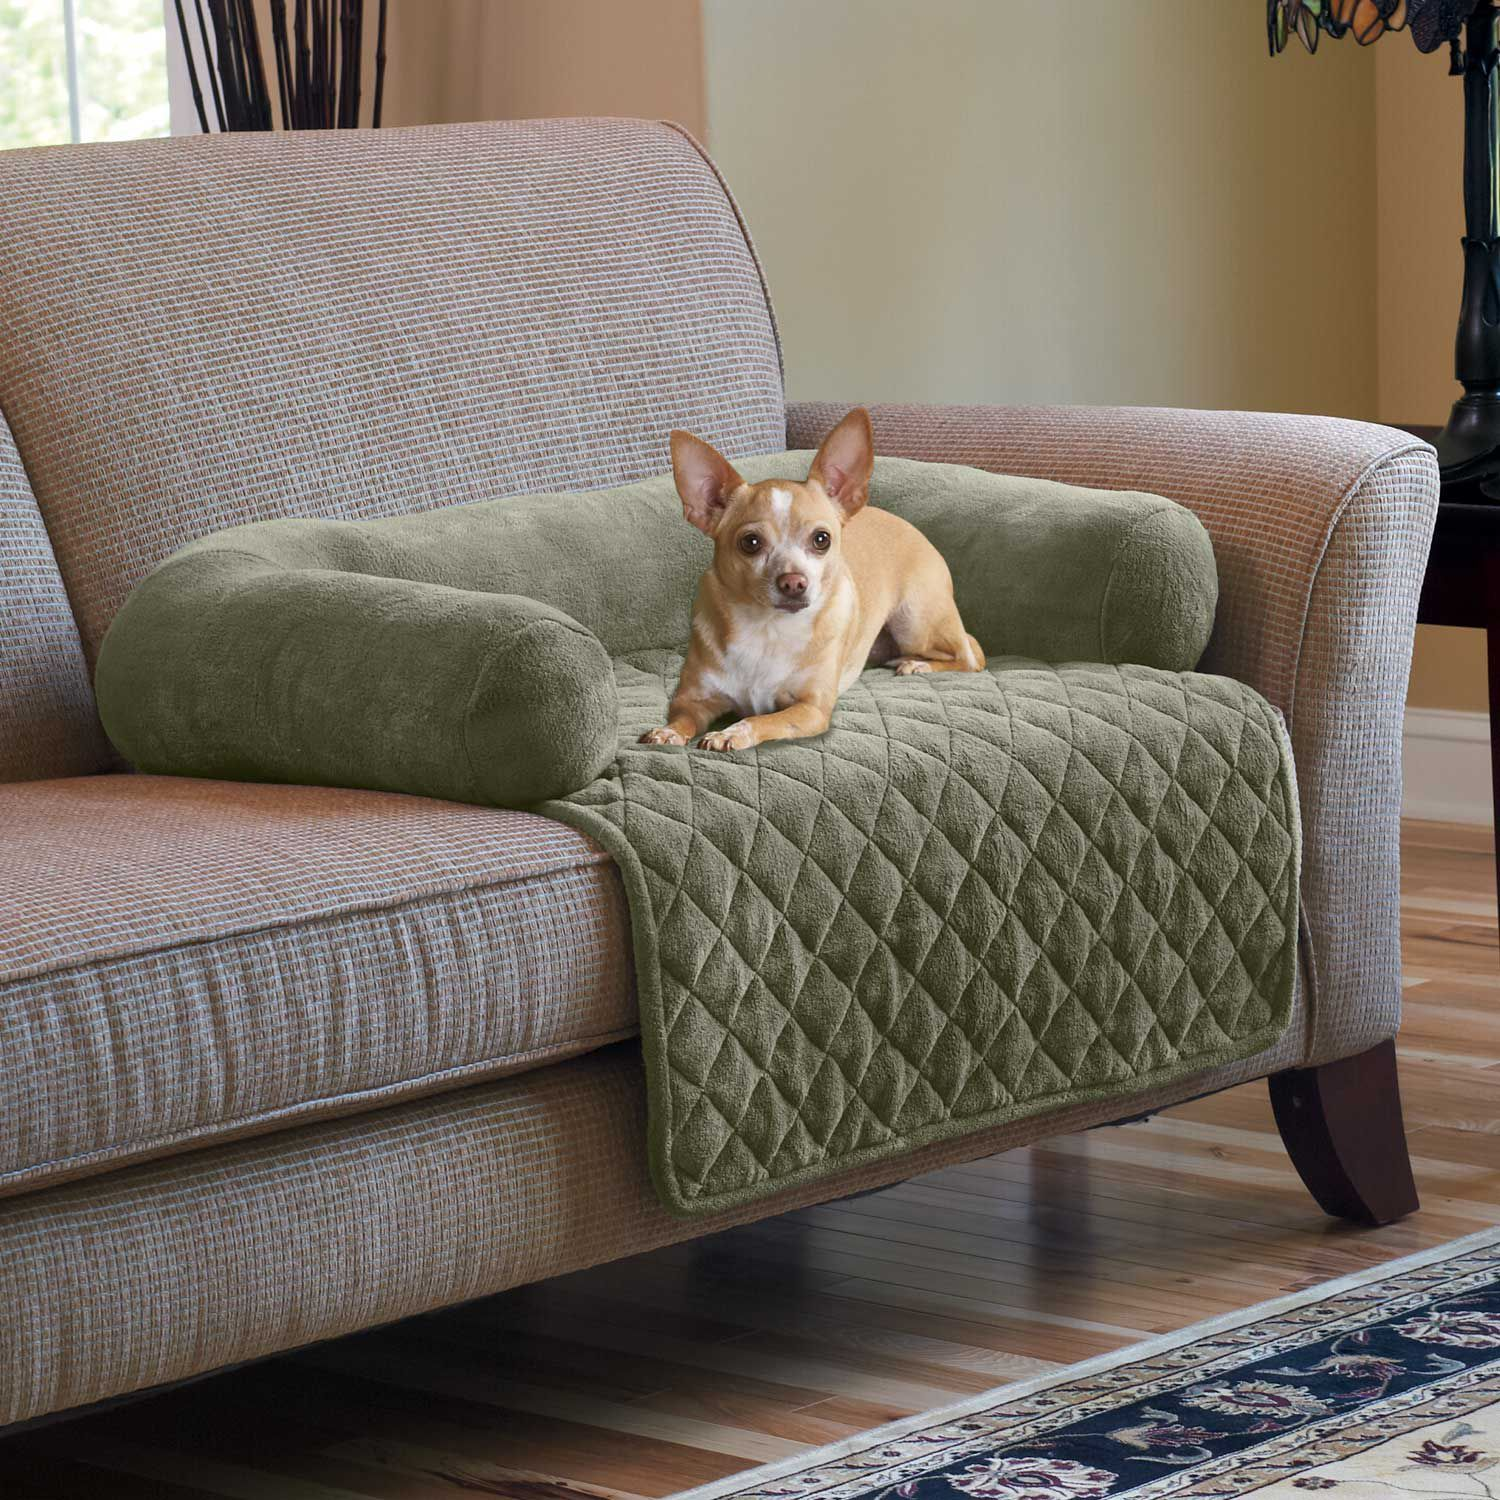 Let your best furry friend lounge in luxury on the couch with this